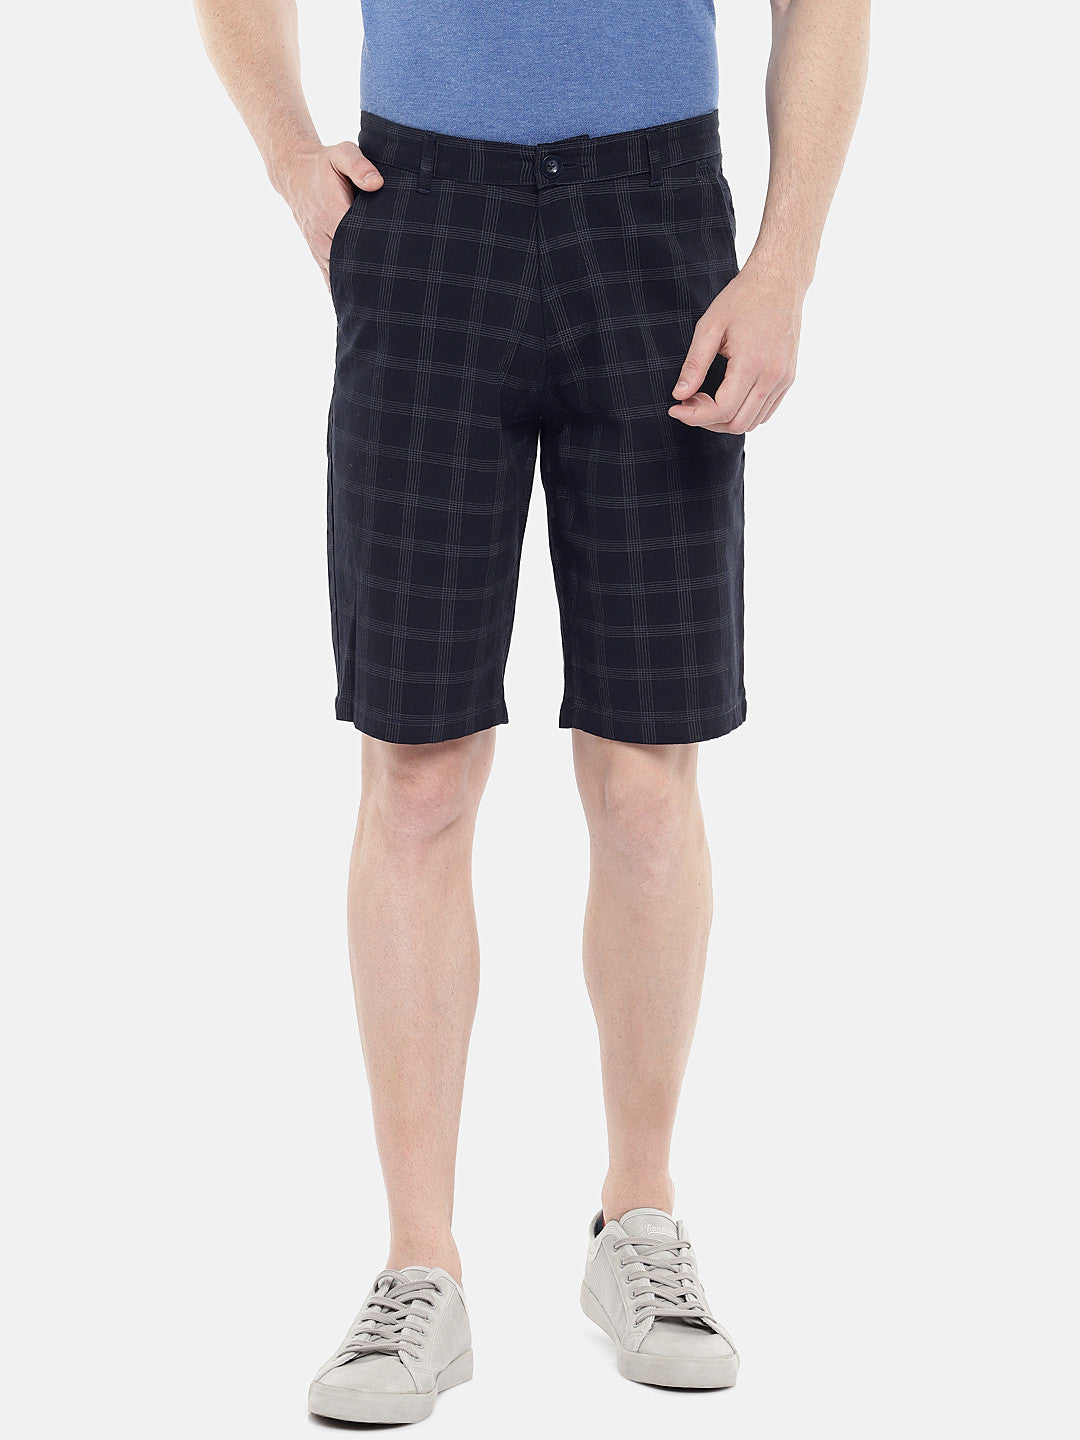 Navy Blue Checked Regular Fit Regular Shorts-1